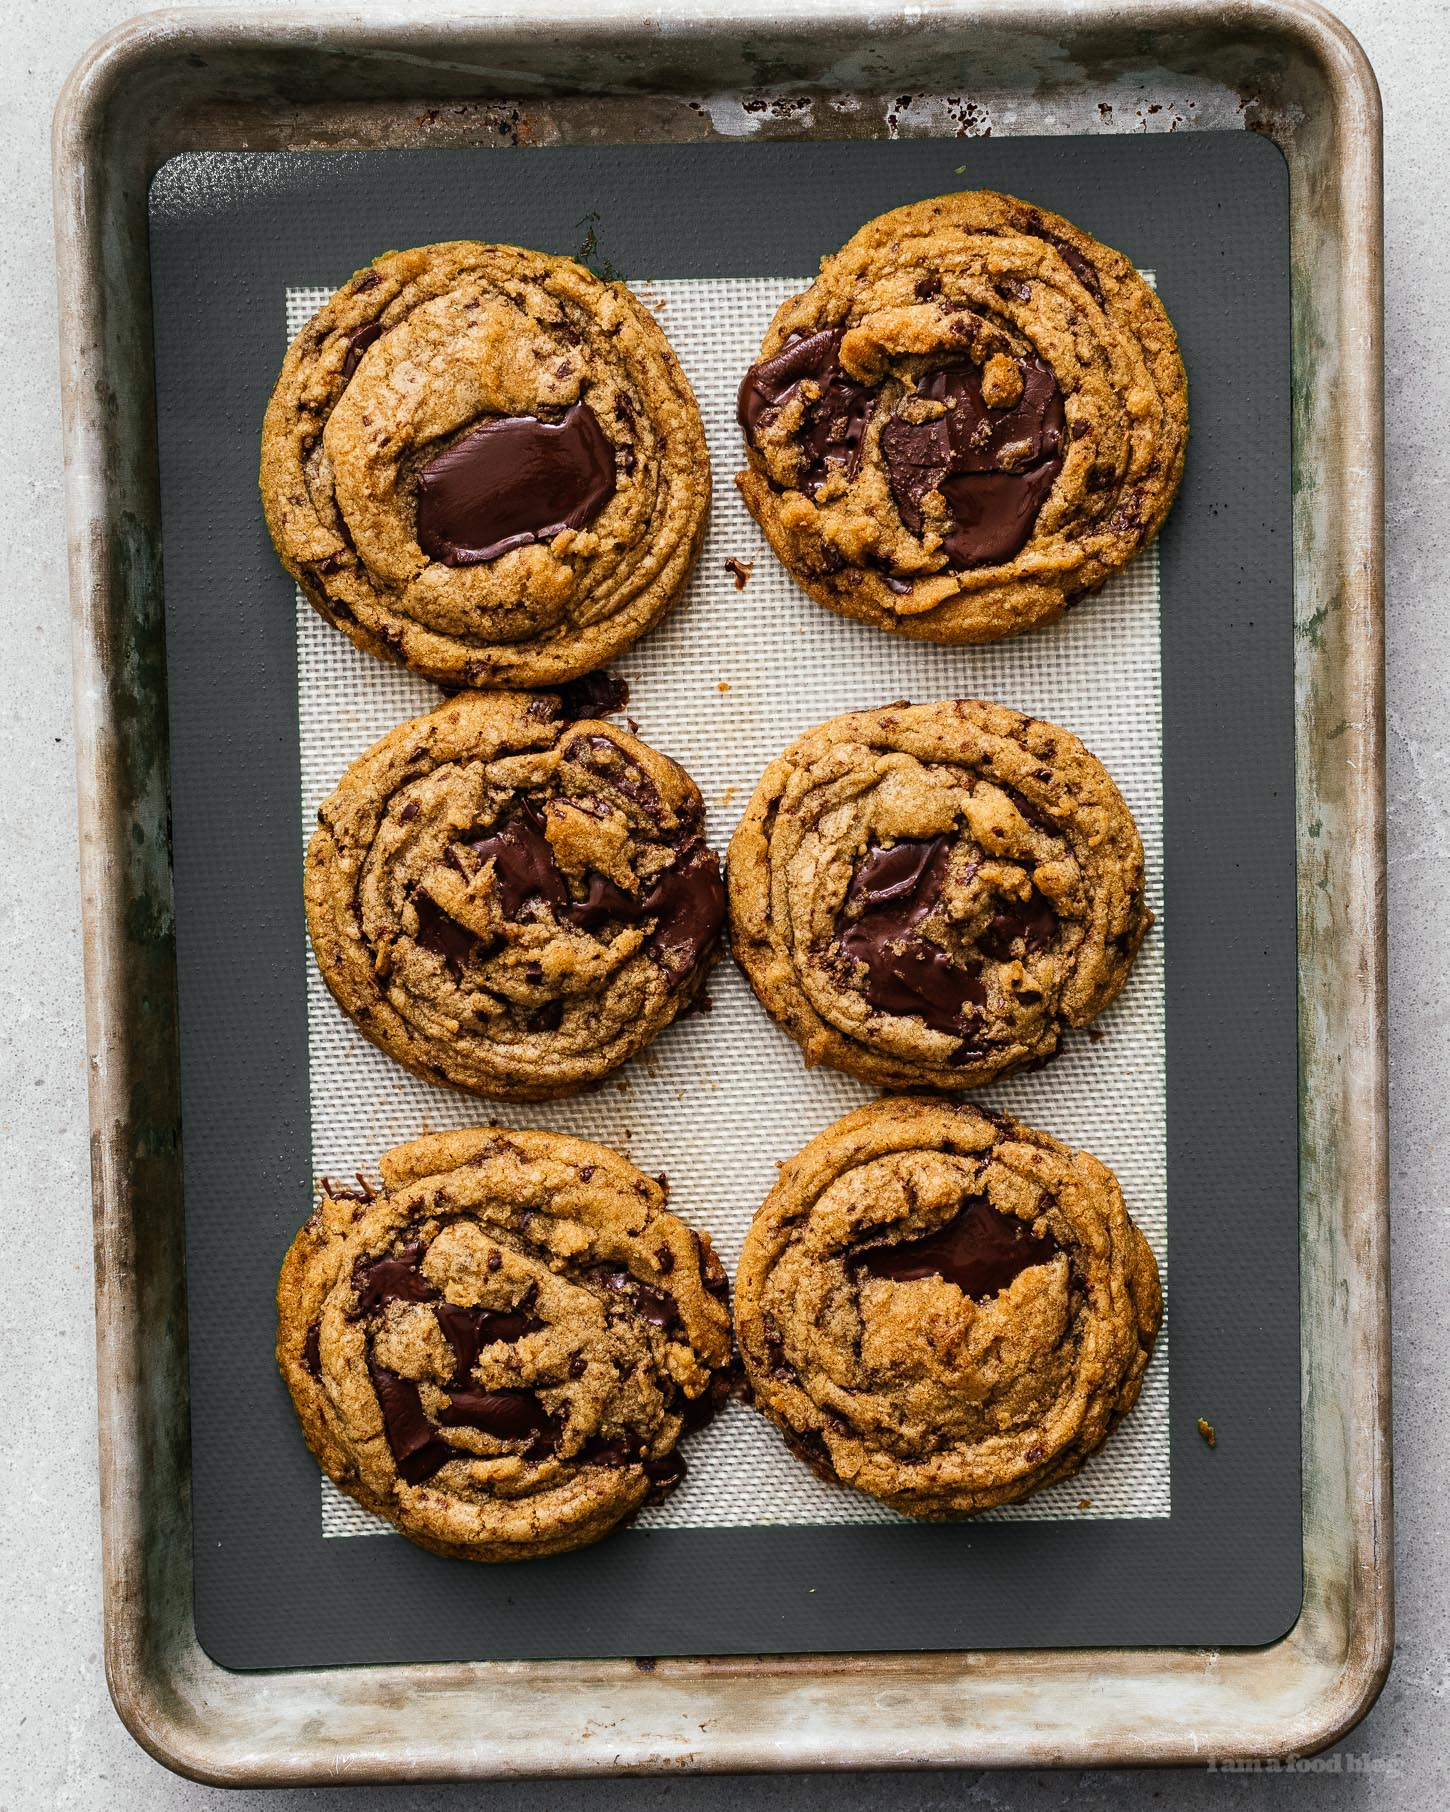 These rippled salted brown butter chocolate chip cookies are to die for: soft and chewy with pools of dark chocolate, crisp edges, and the salty nuttiness of browned butter. No mixer needed – it's going to be your new fave! #brownedbutter #brownbutter #chocolatechipcookies #chocolatechipcookierecipe #recipes #cookies